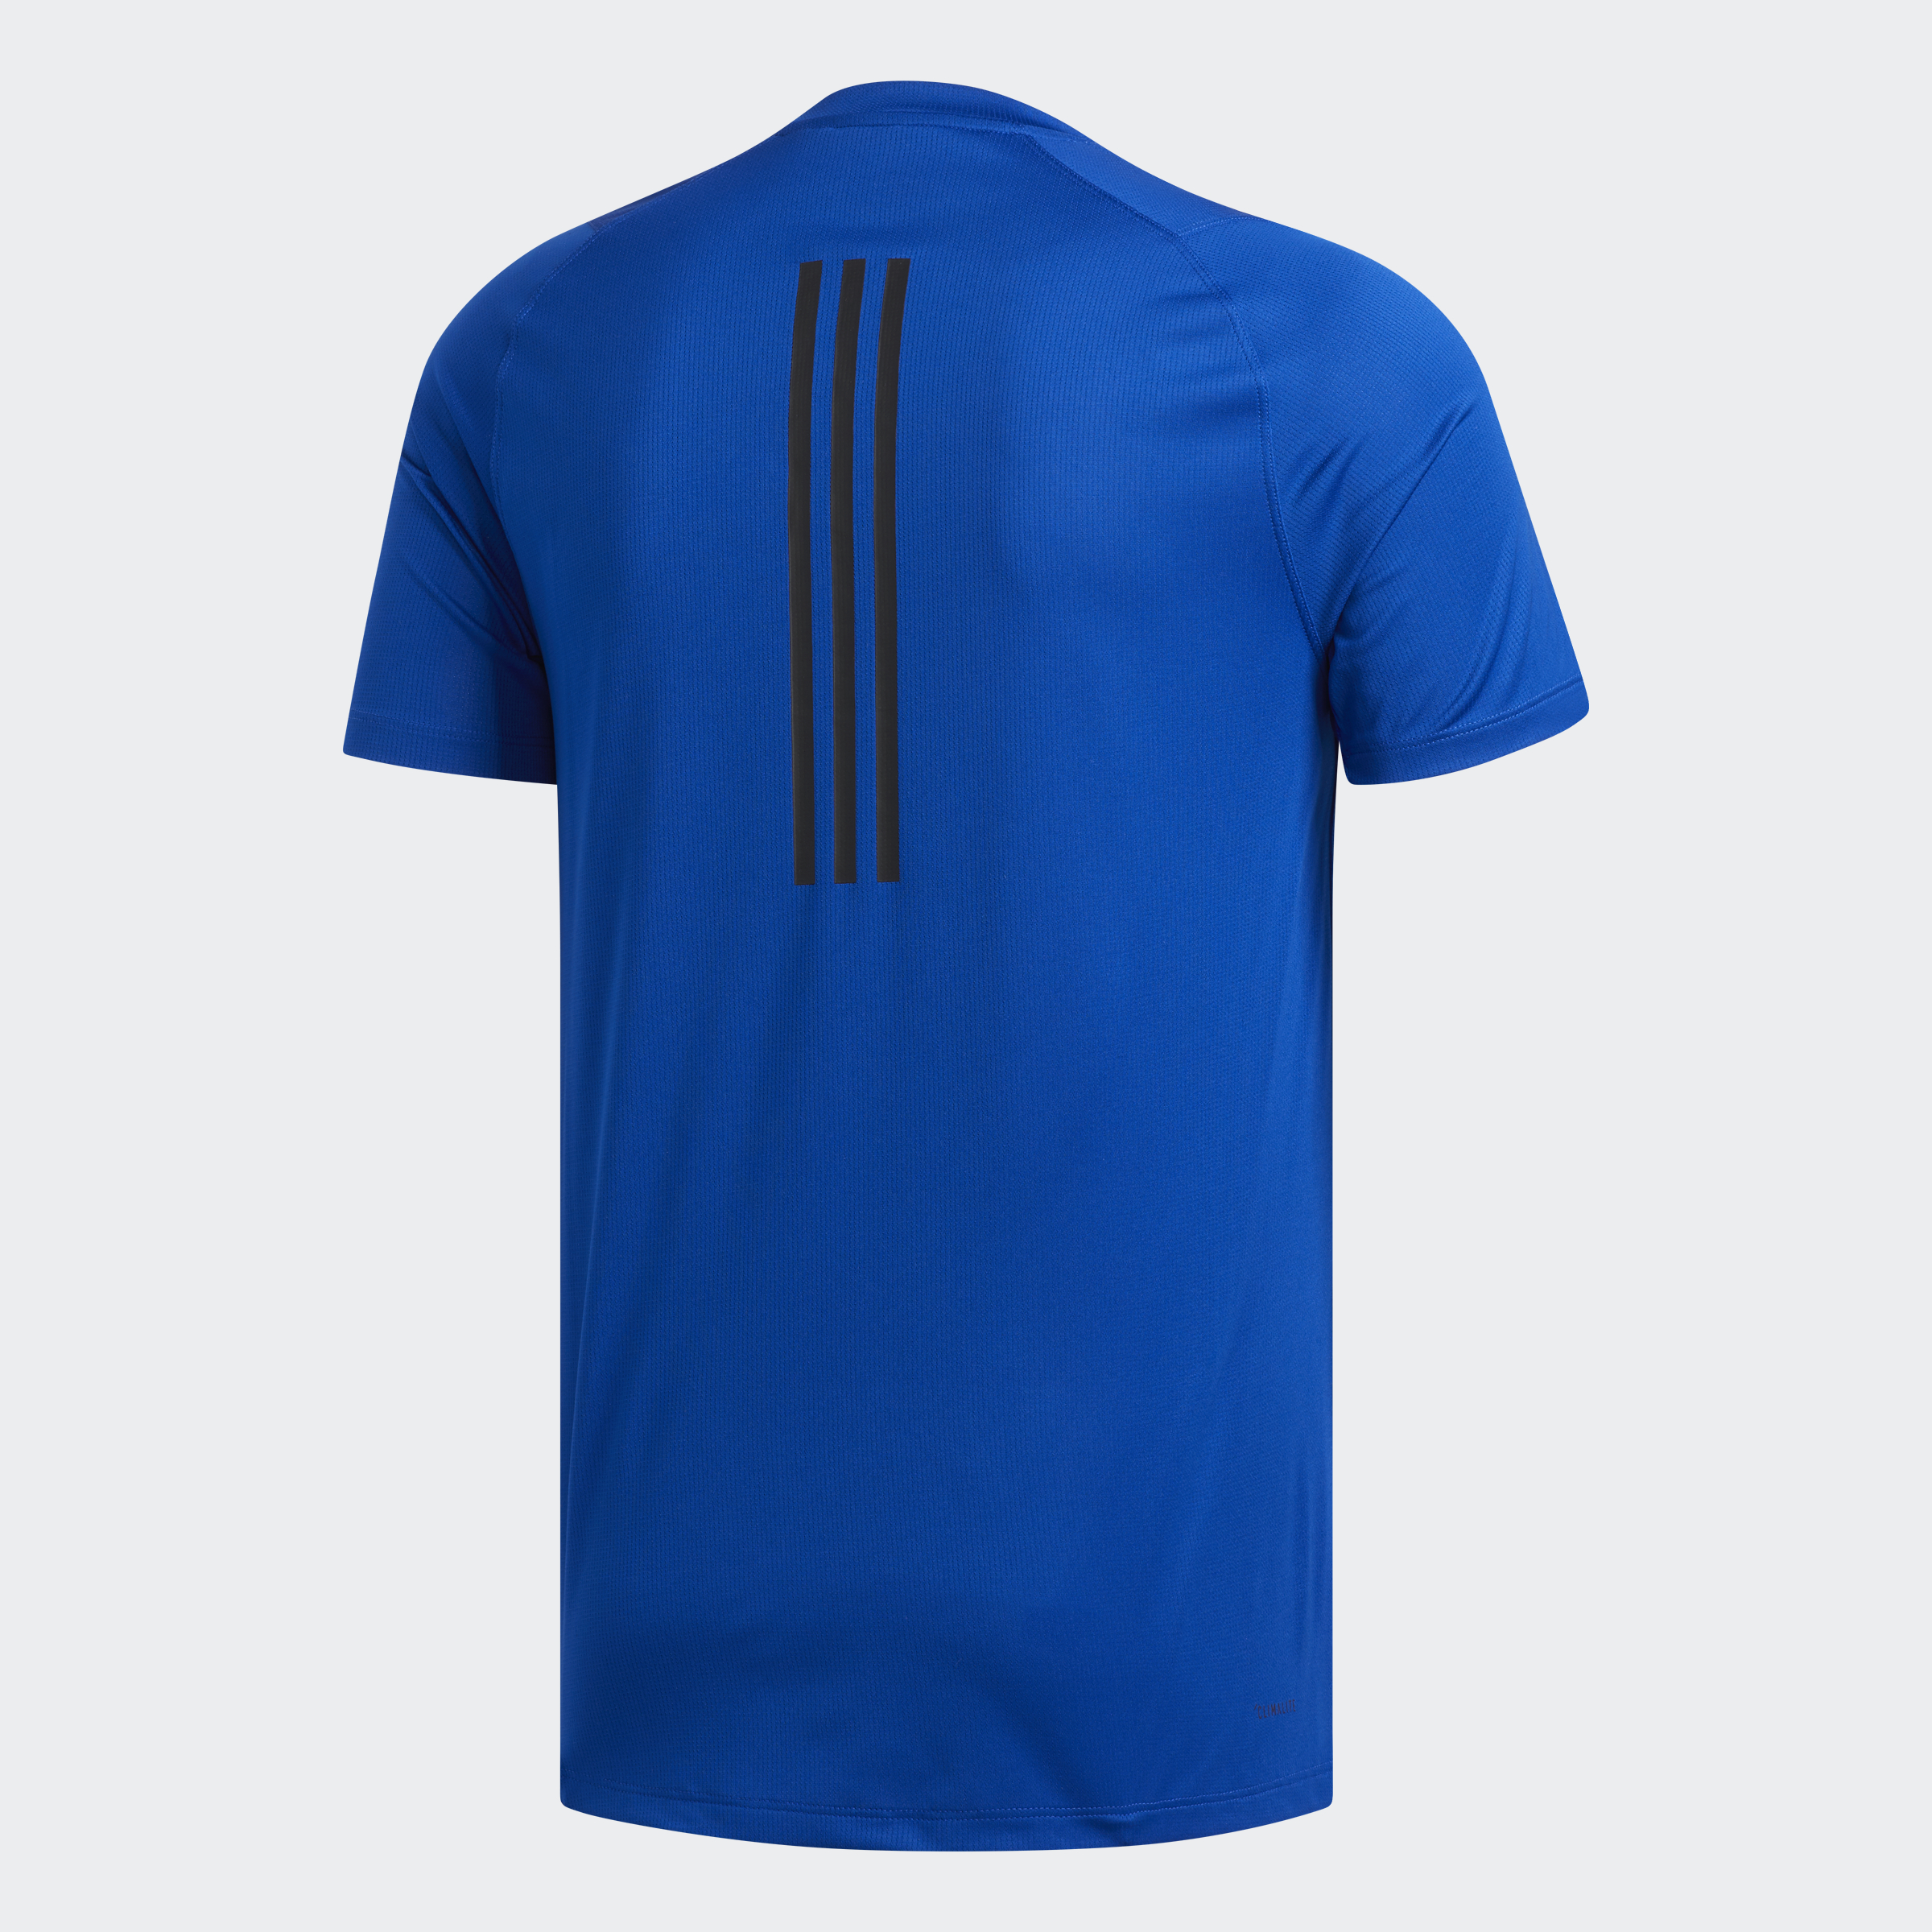 adidas-FreeLift-Sport-Fitted-3-Stripes-Tee-Men-039-s-Shirts miniature 53